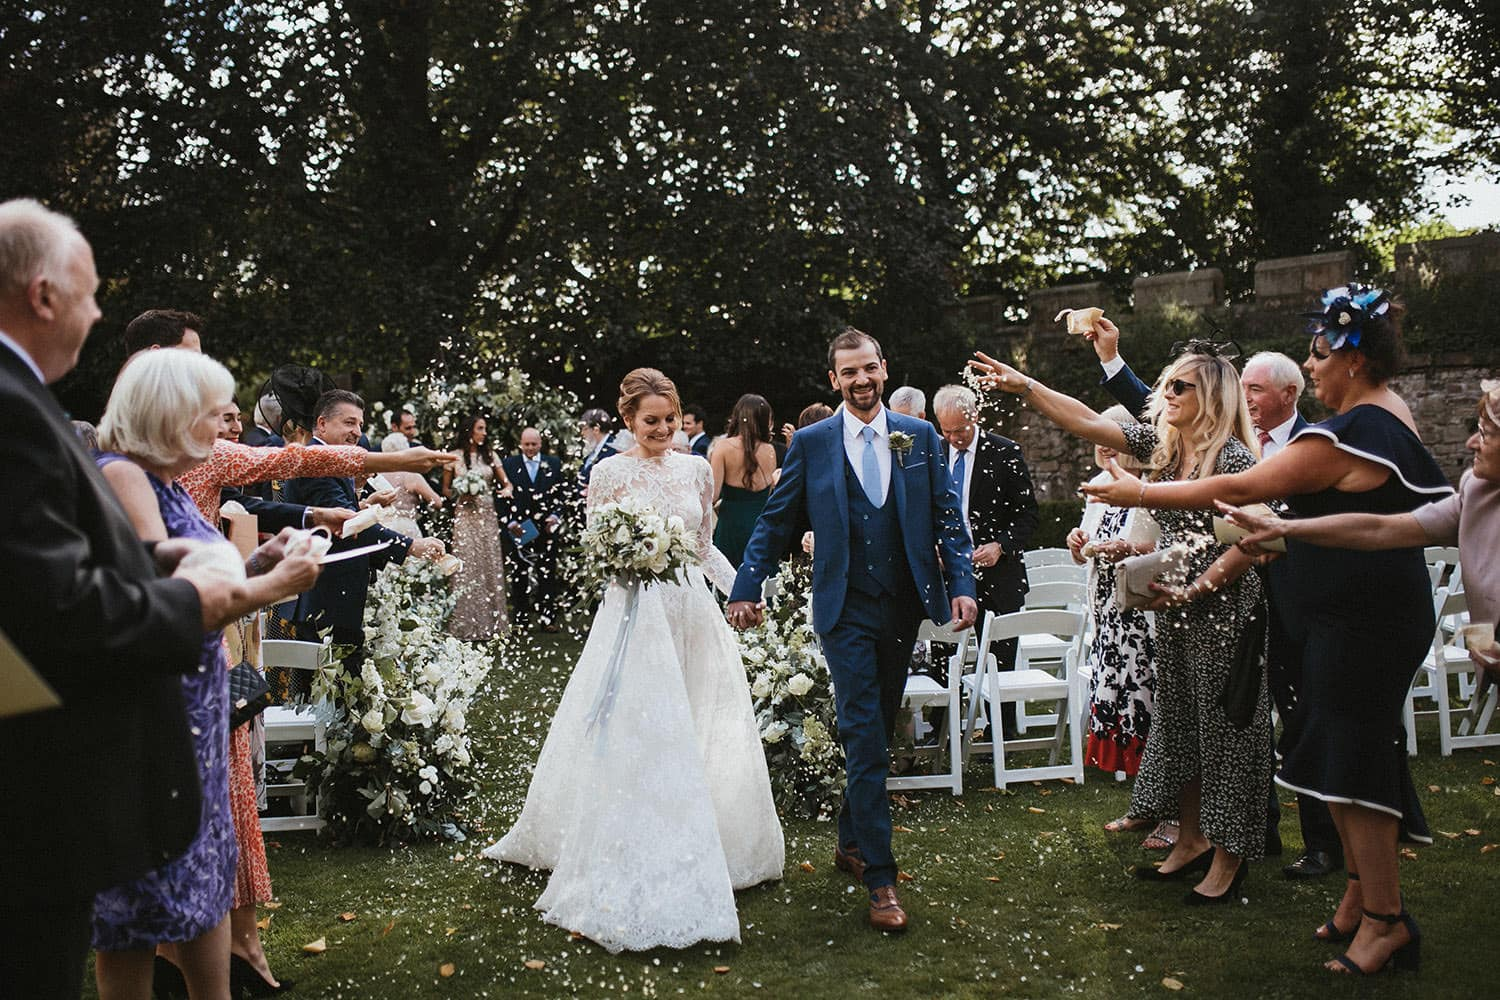 Bride and Groom having confetti thrown at them after wedding ceremony at Durham Castle